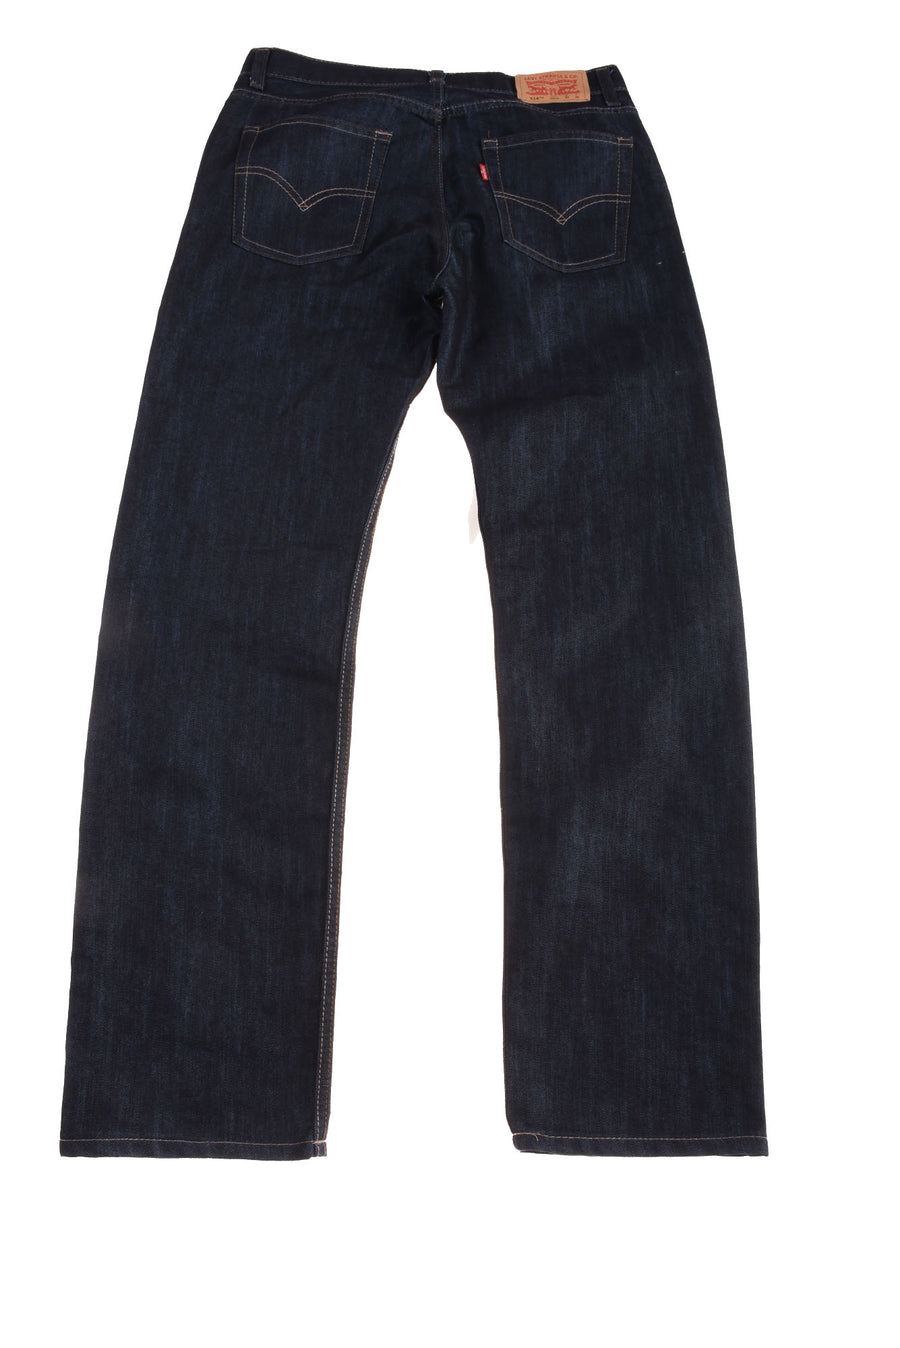 USED Levi's Women's Plus Jeans 20 Dark Blue